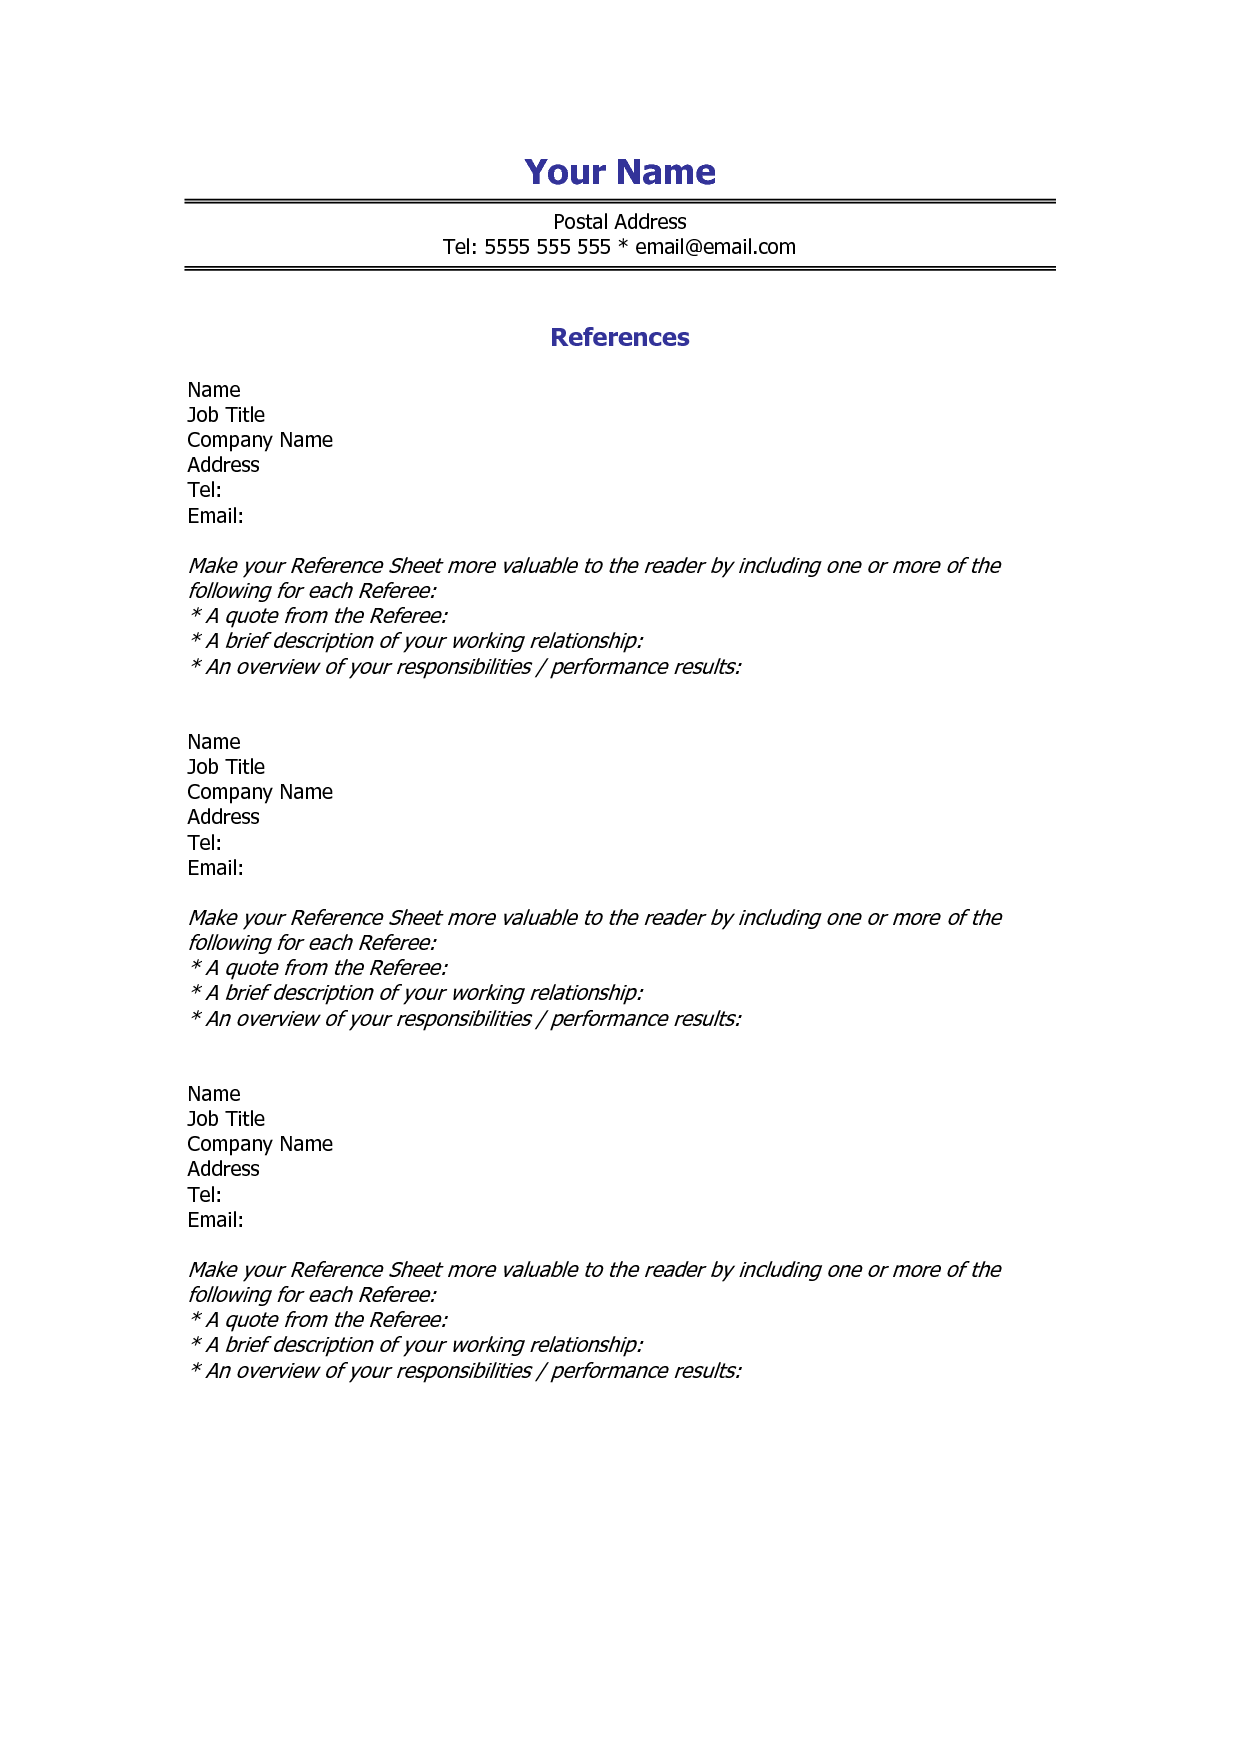 Template For Employee Reference